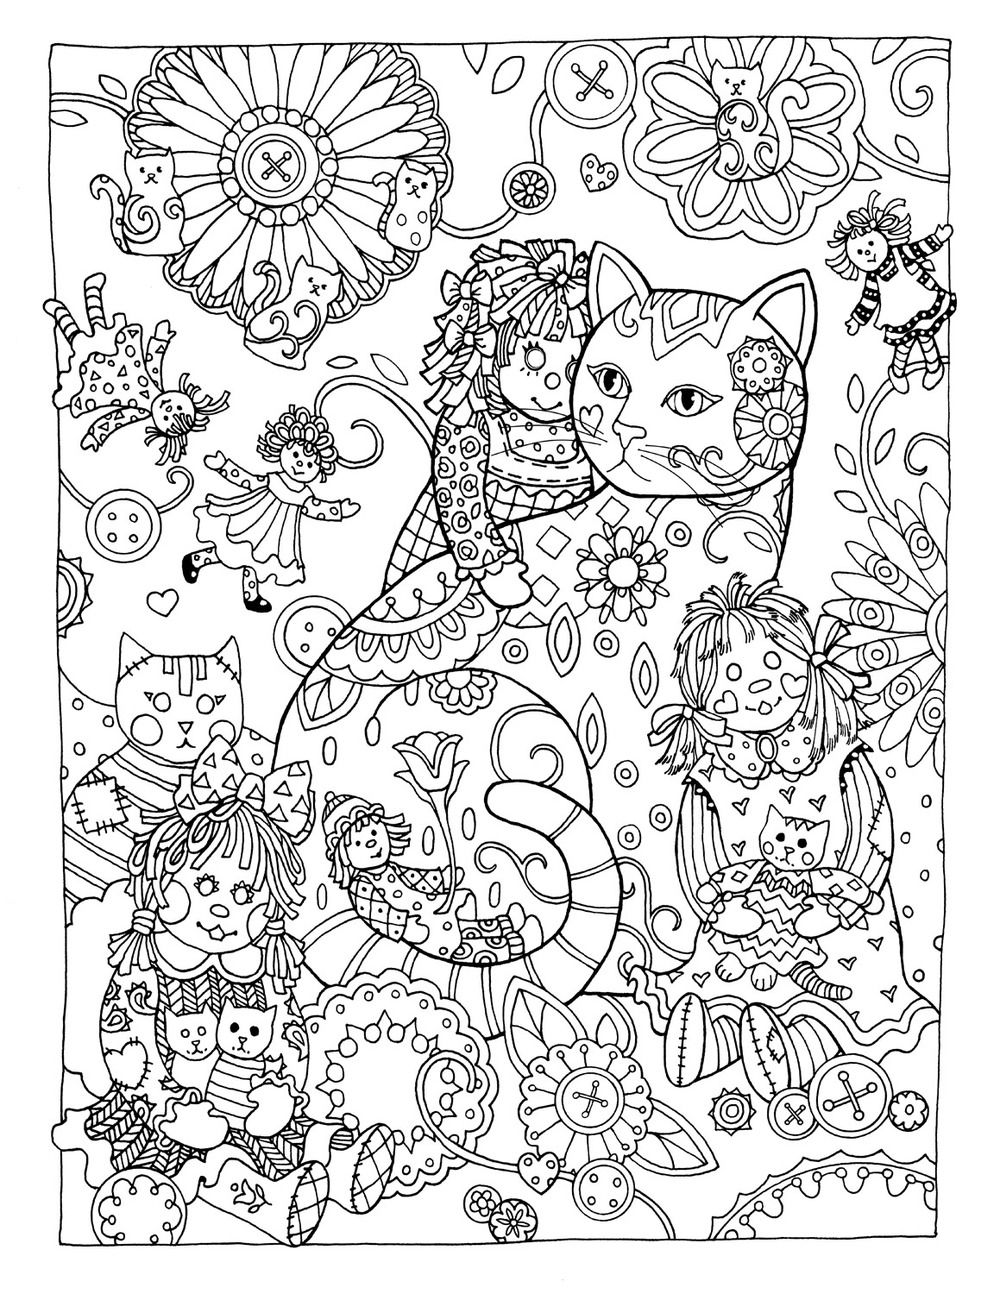 Creative Cats Colouring Book Rag Dolls By Marjorie Sarnat